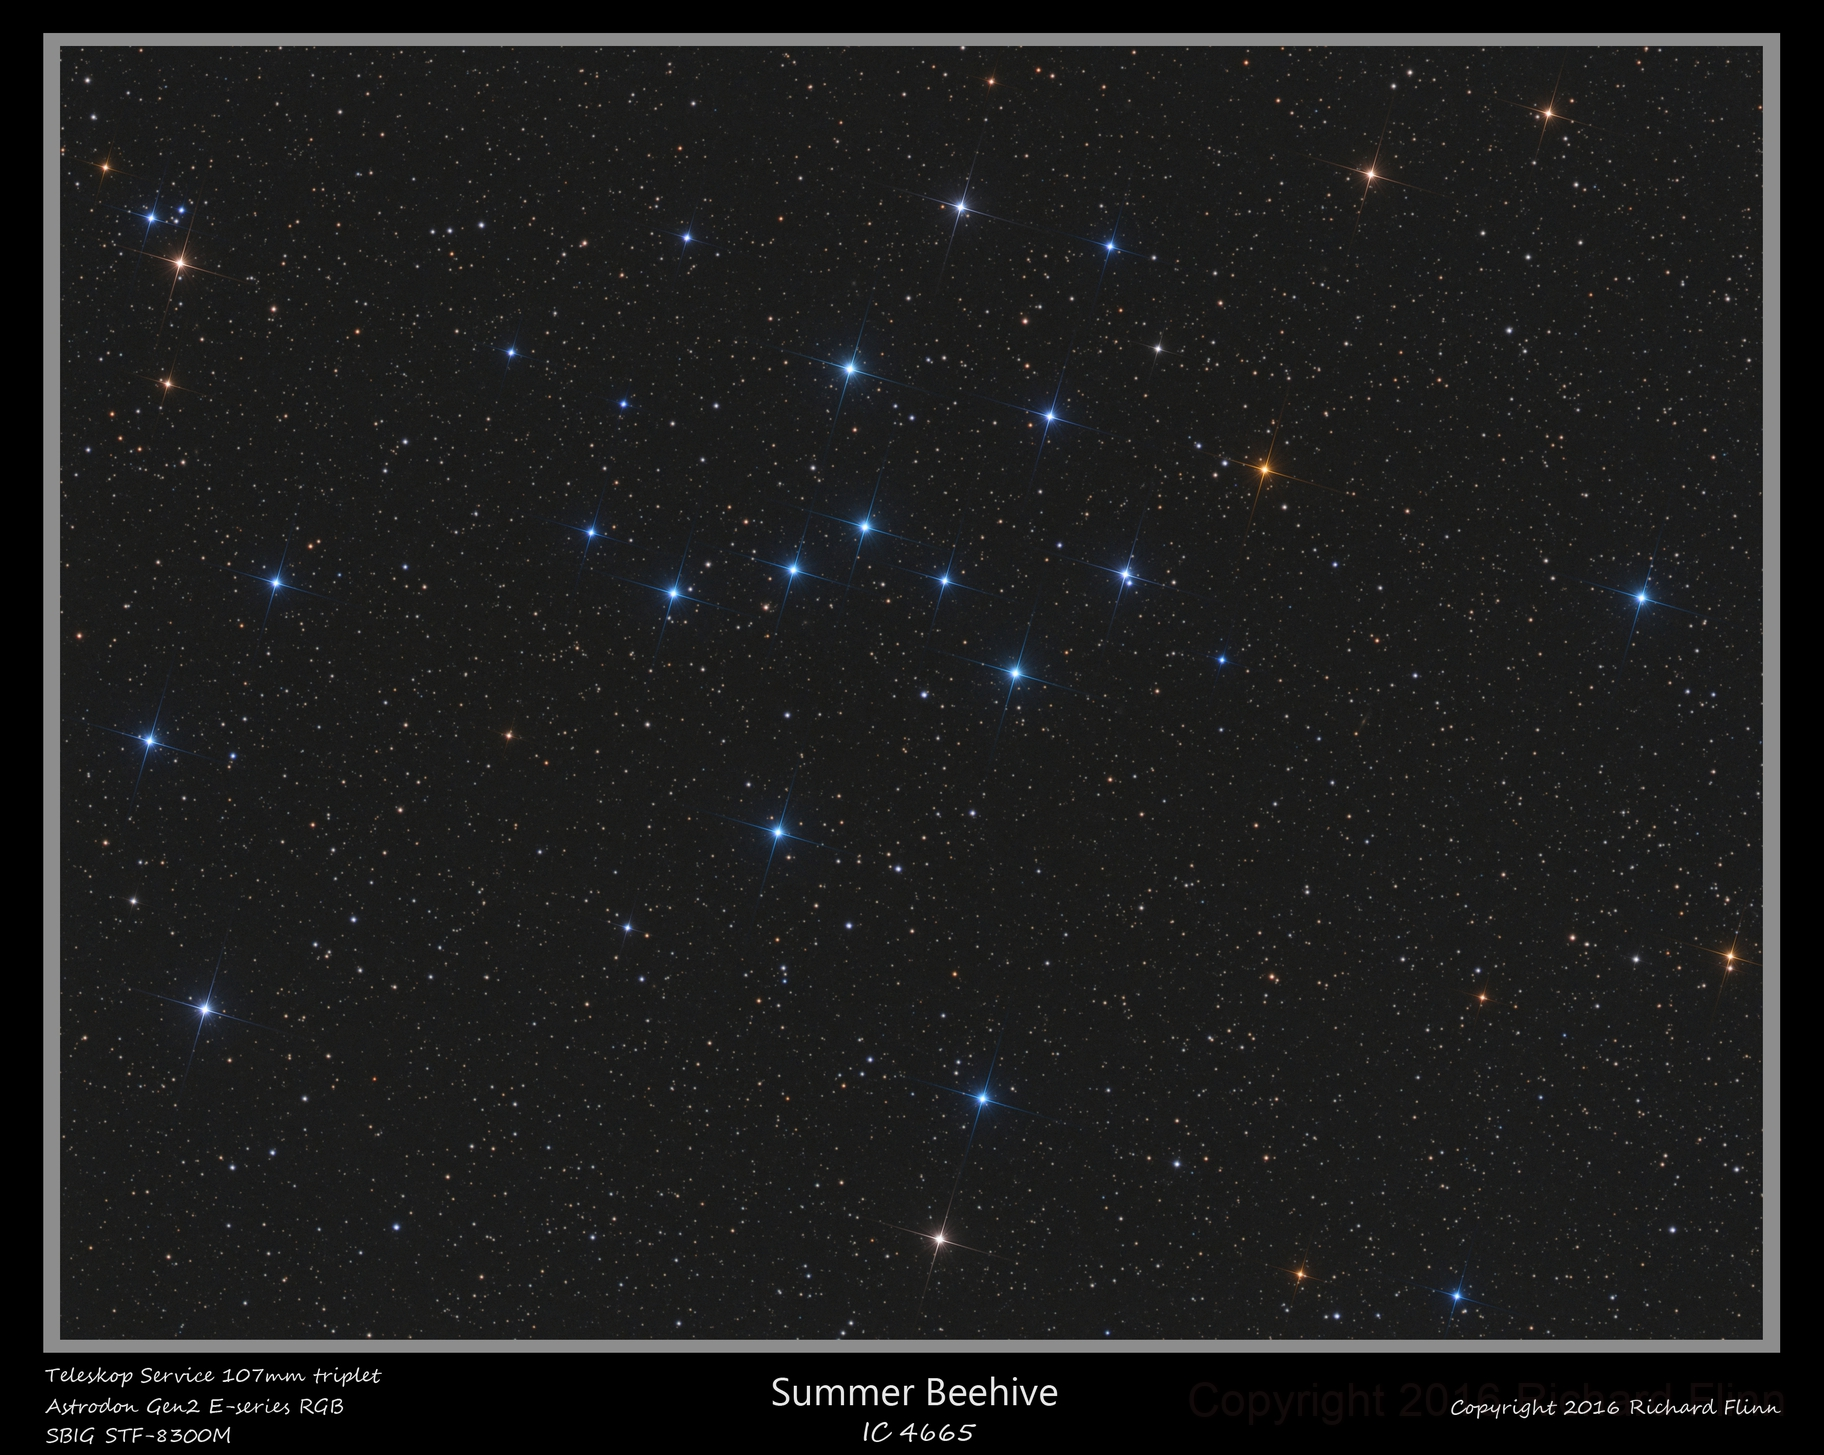 IC 4665 Summer Beehive Cluster